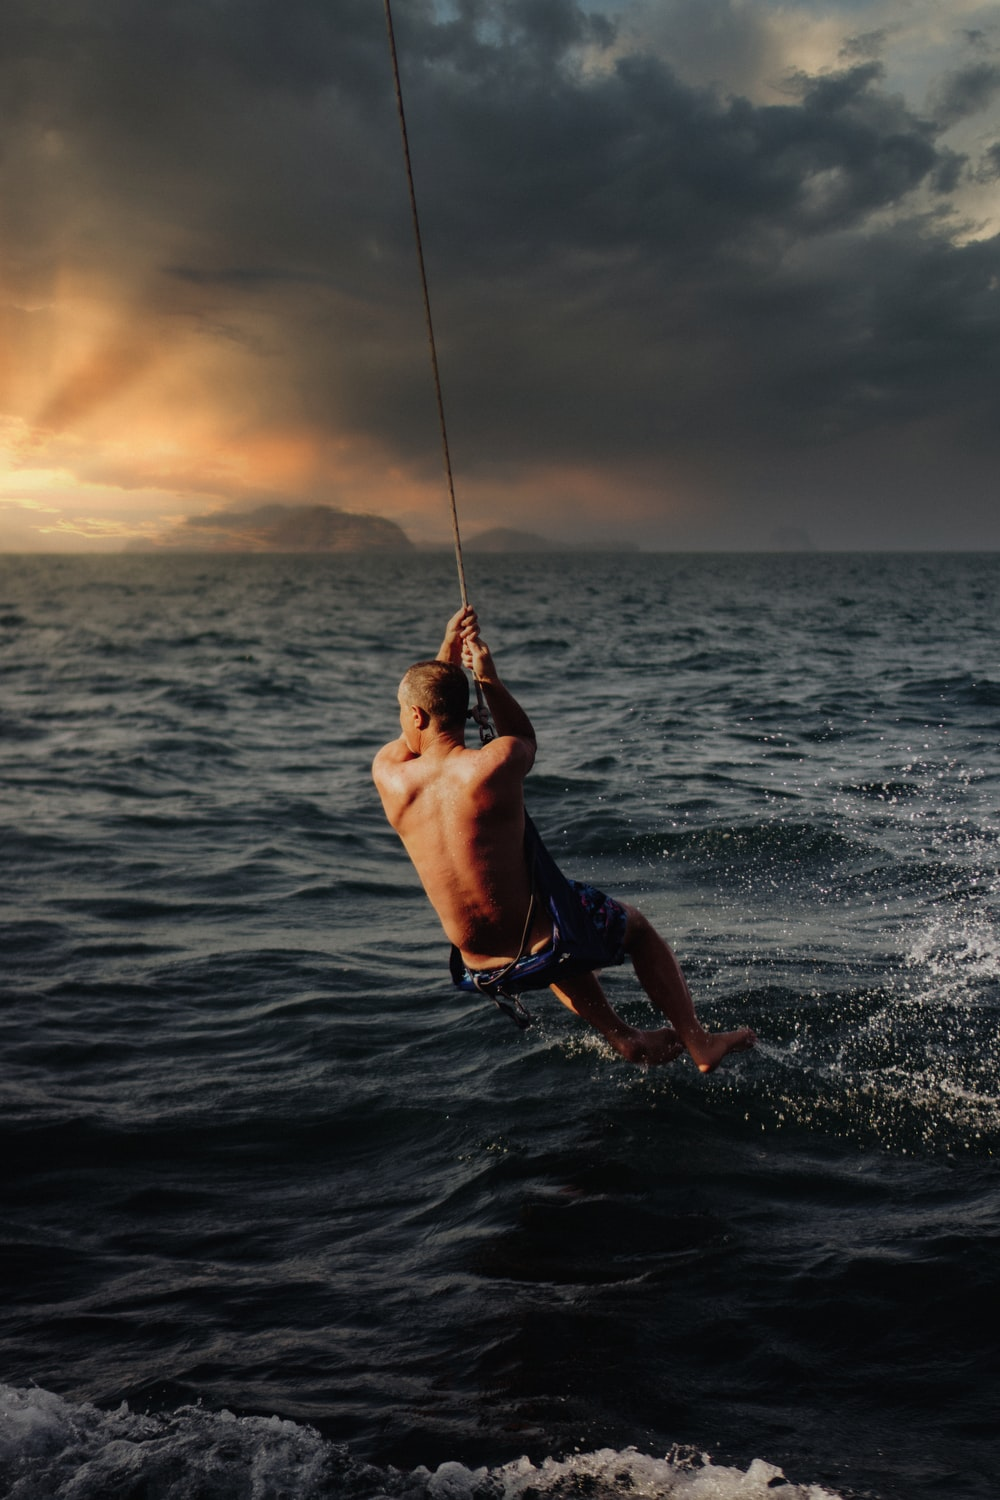 man in black shorts holding rope on body of water during daytime